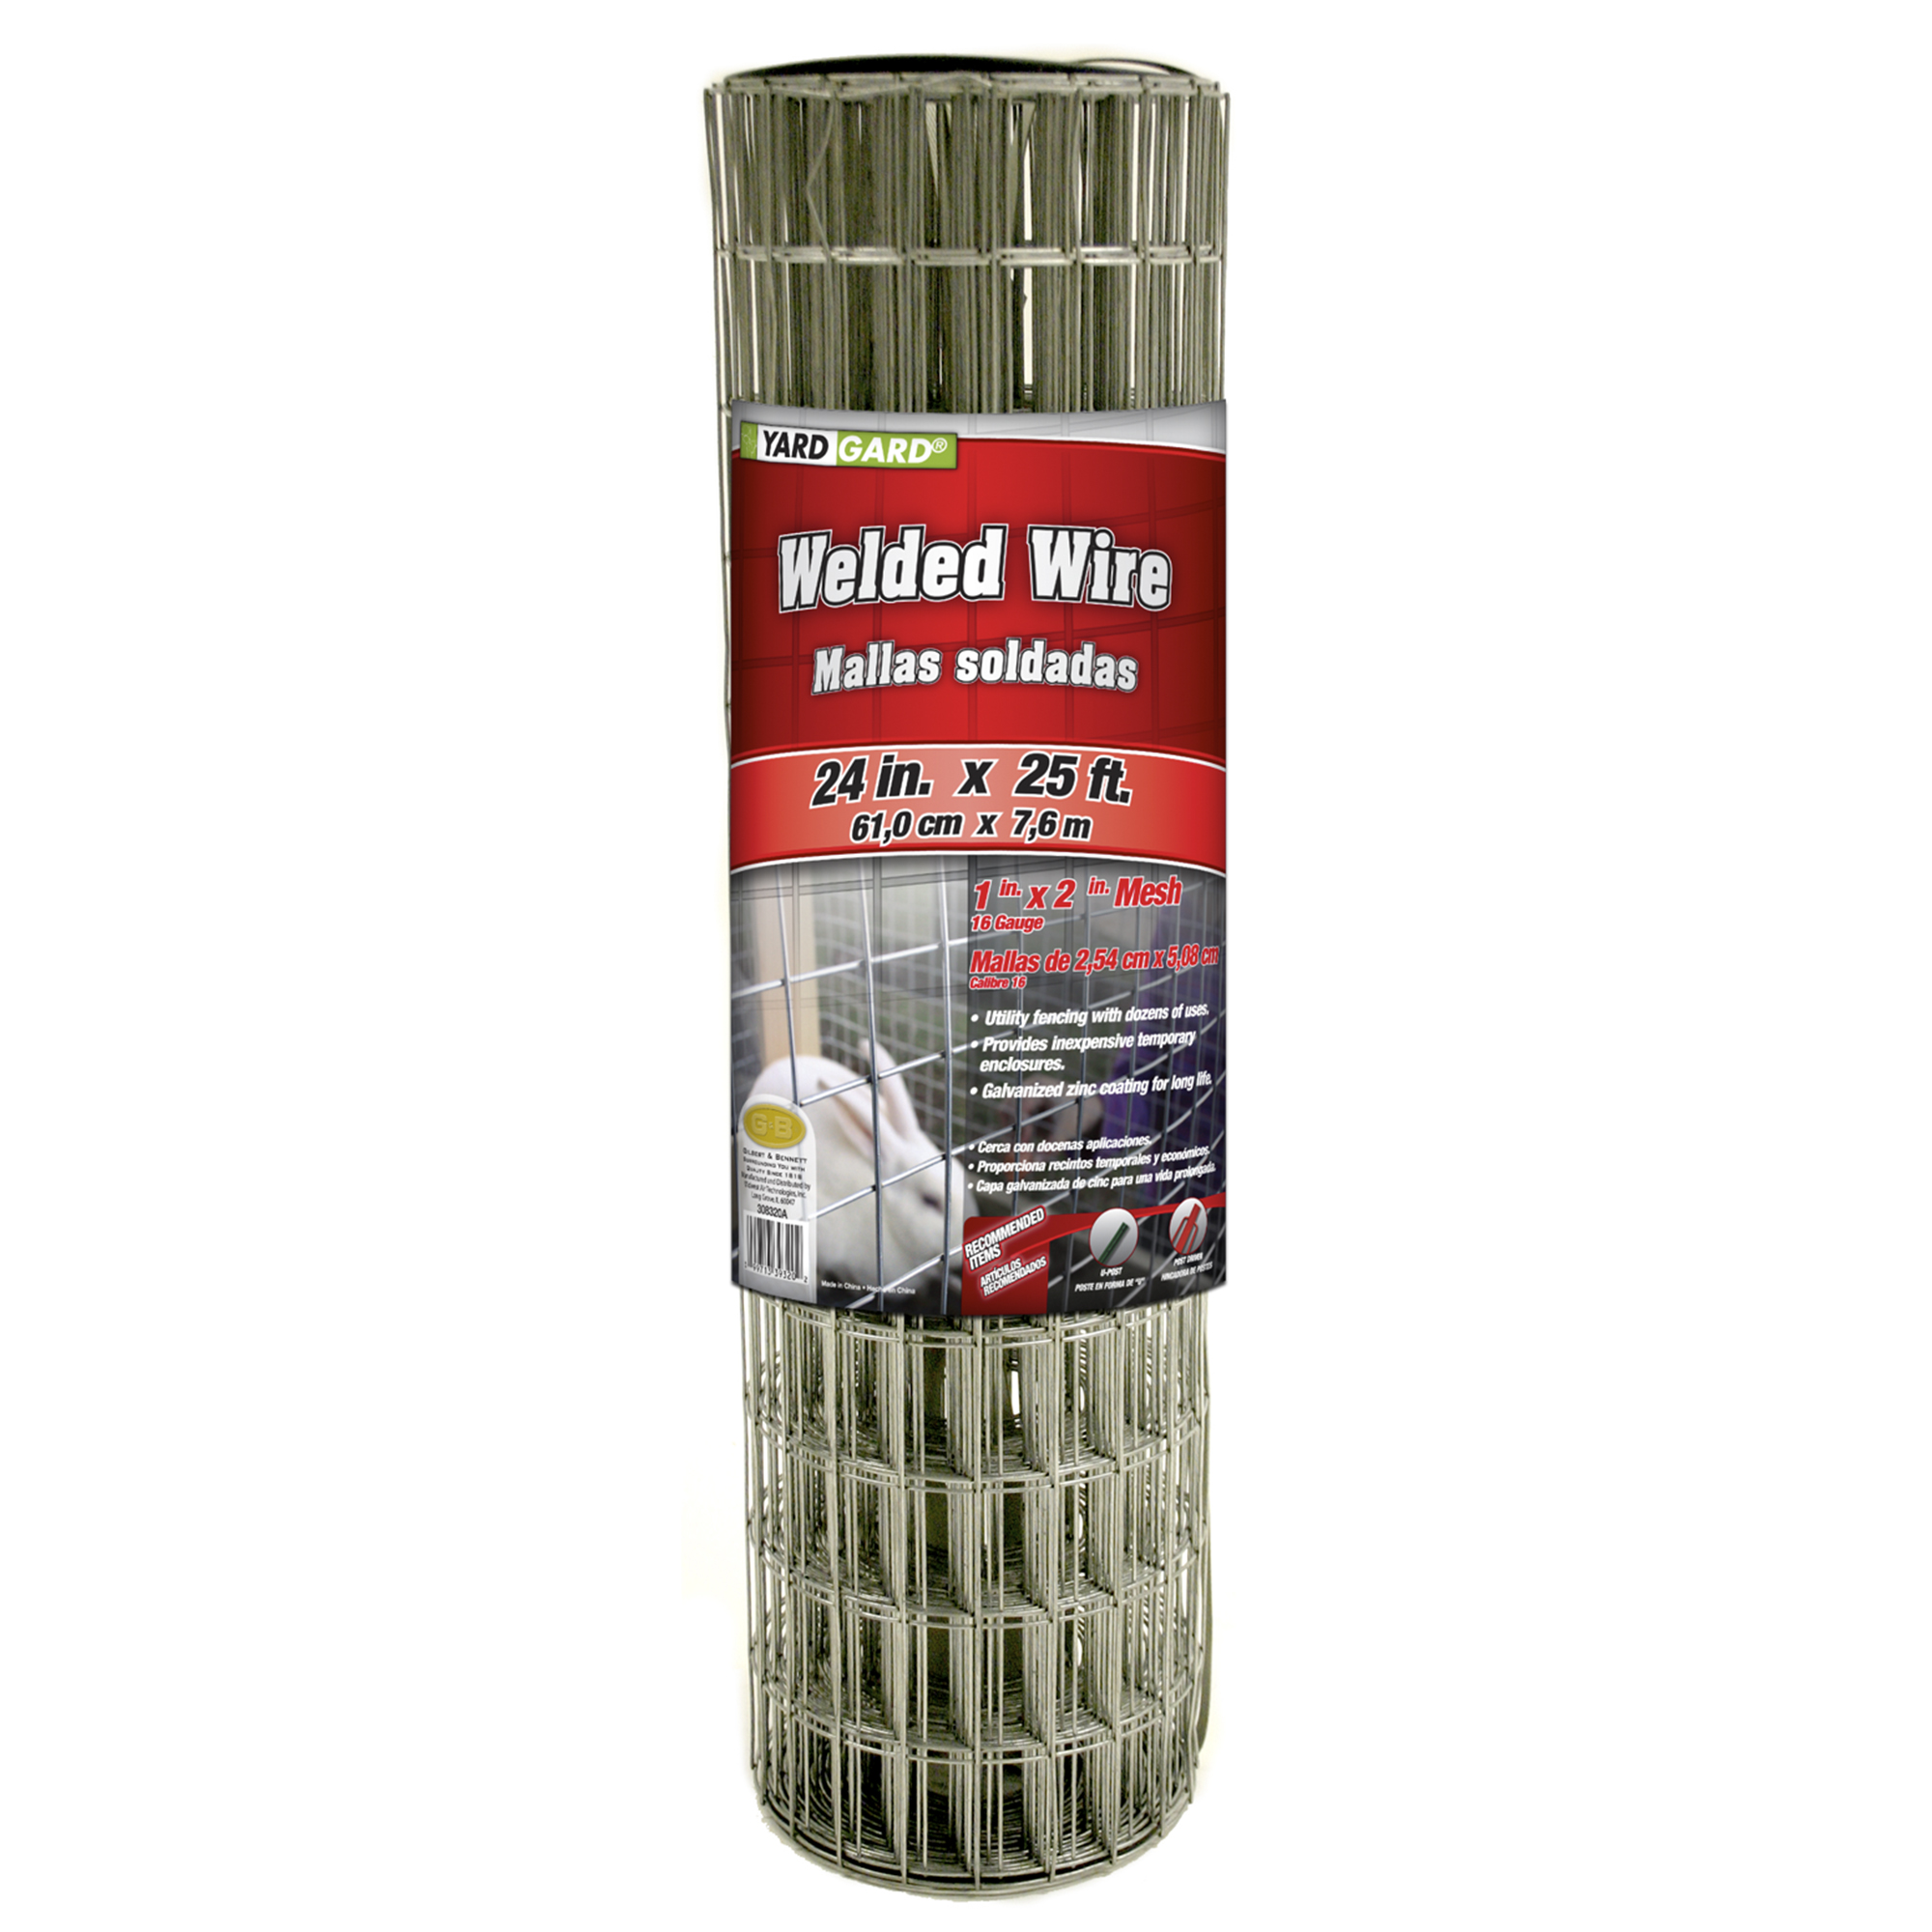 YARDGARD 1 Inch by 2 Inch Mesh, 24 Inch by 25 Foot Galvanized Welded Wire Fence